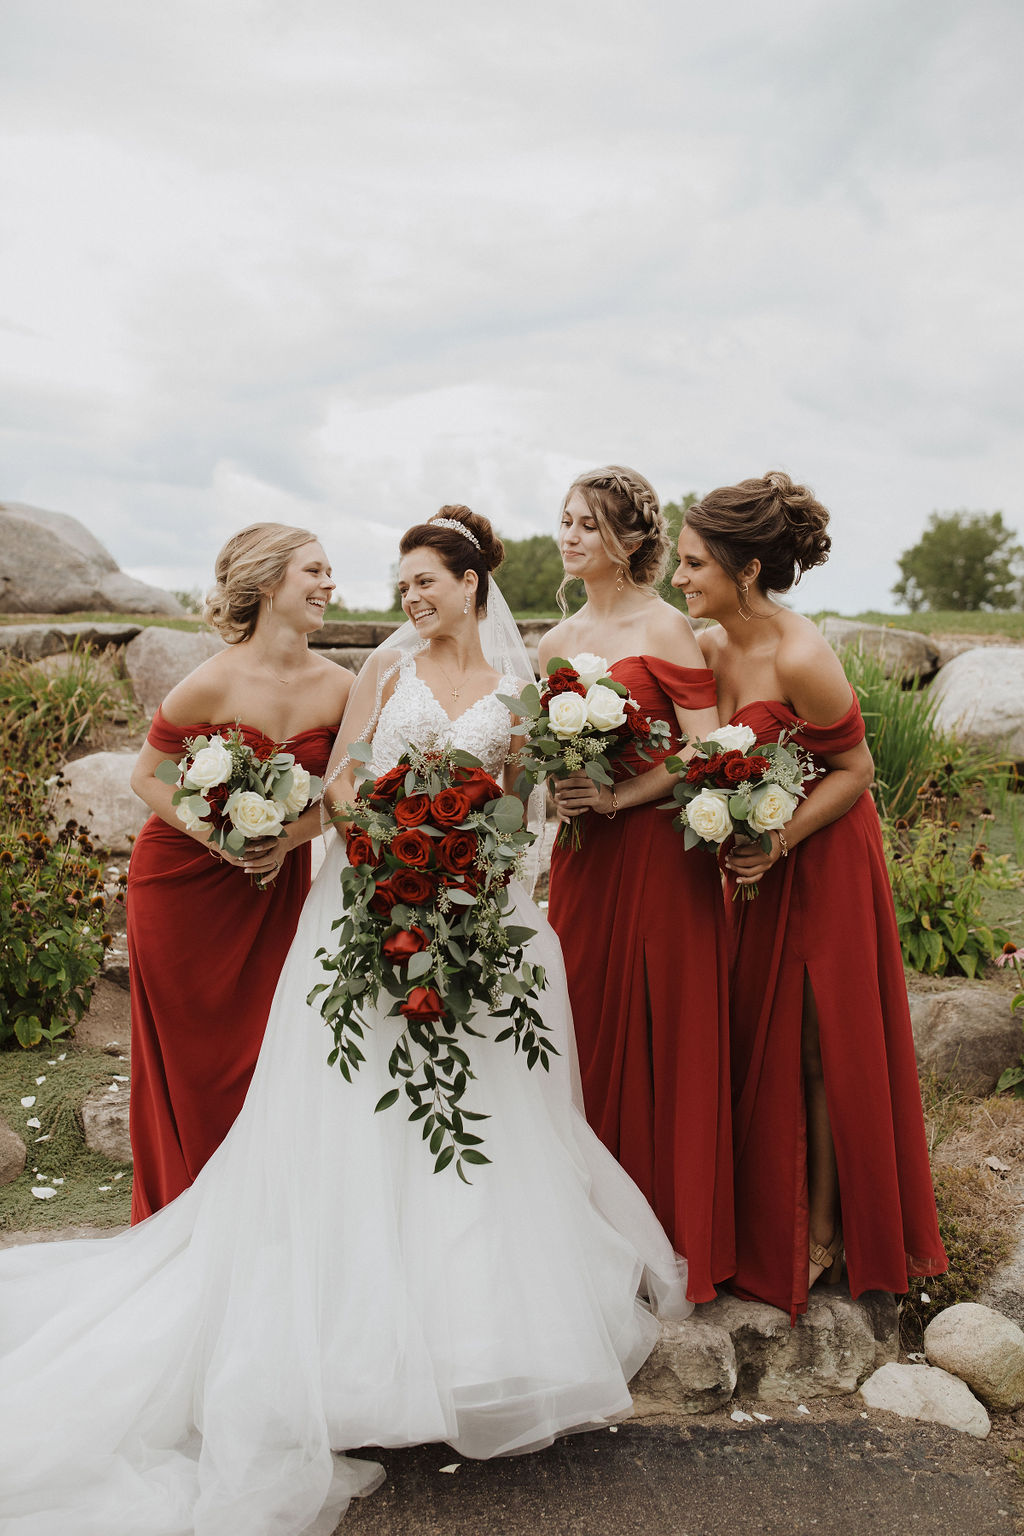 Real Bride Standing with Bridesmaids